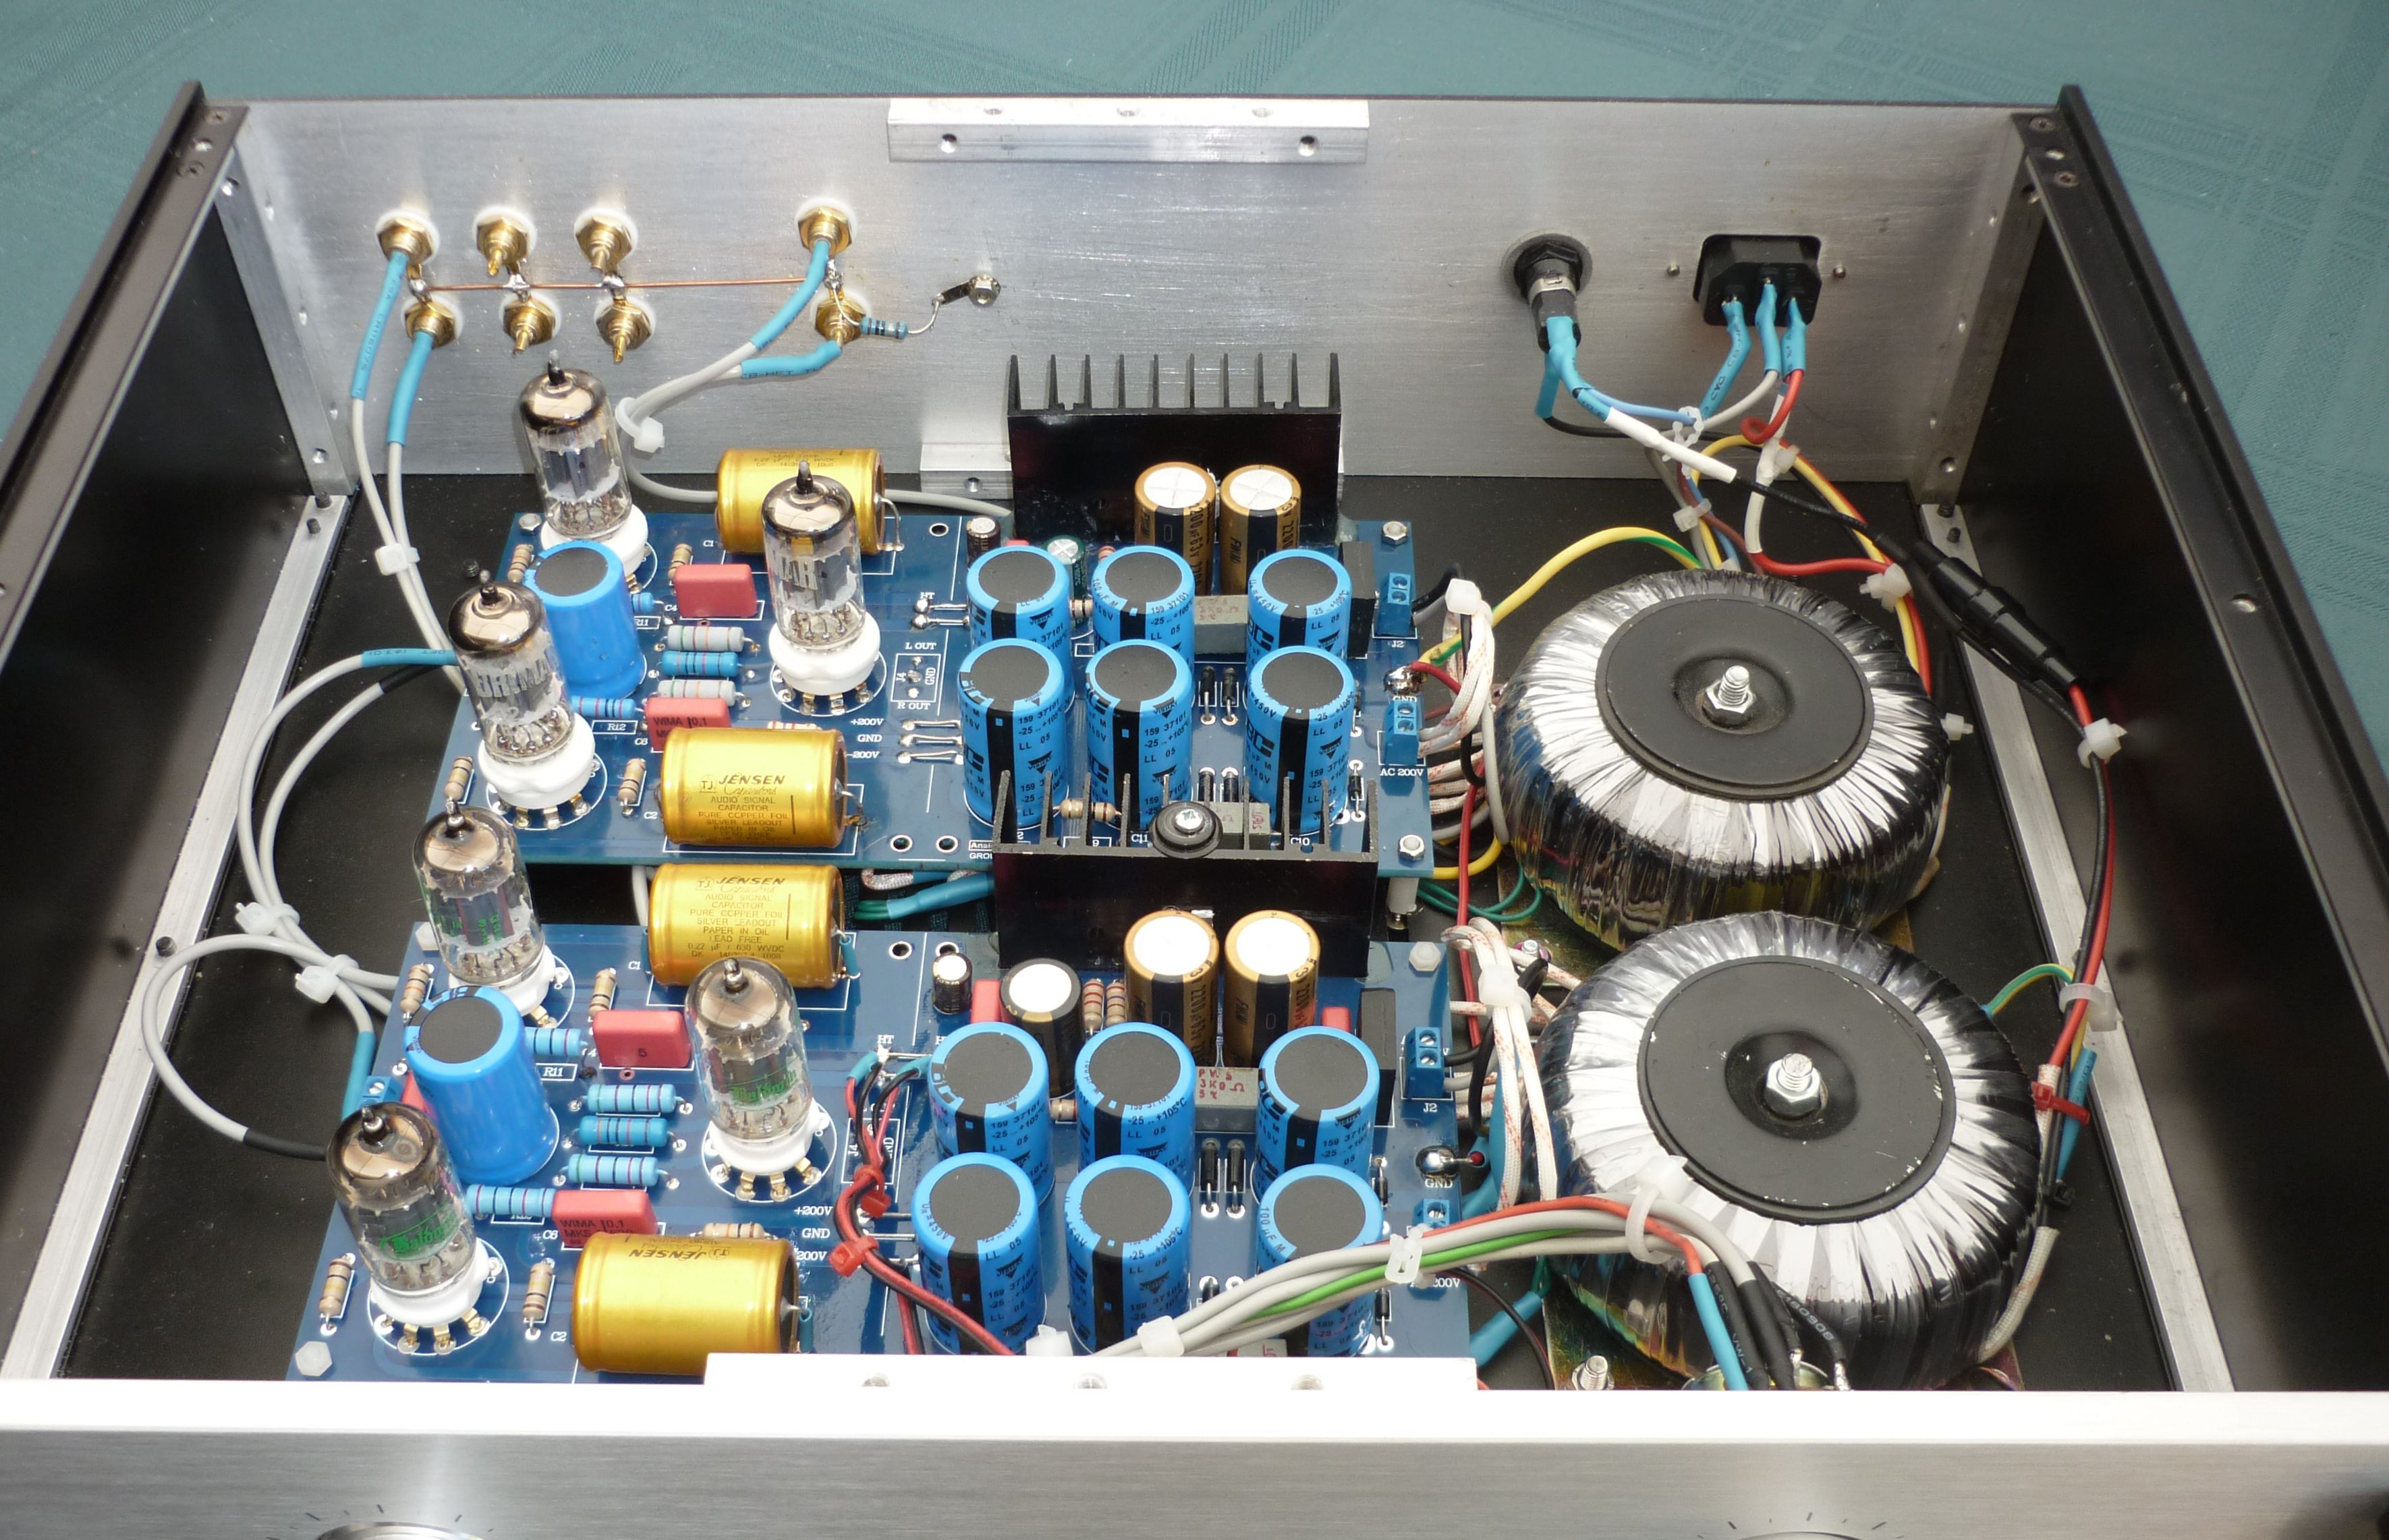 Best ideas about DIY Audio Kits . Save or Pin diy audio dac DIY Projects Now.